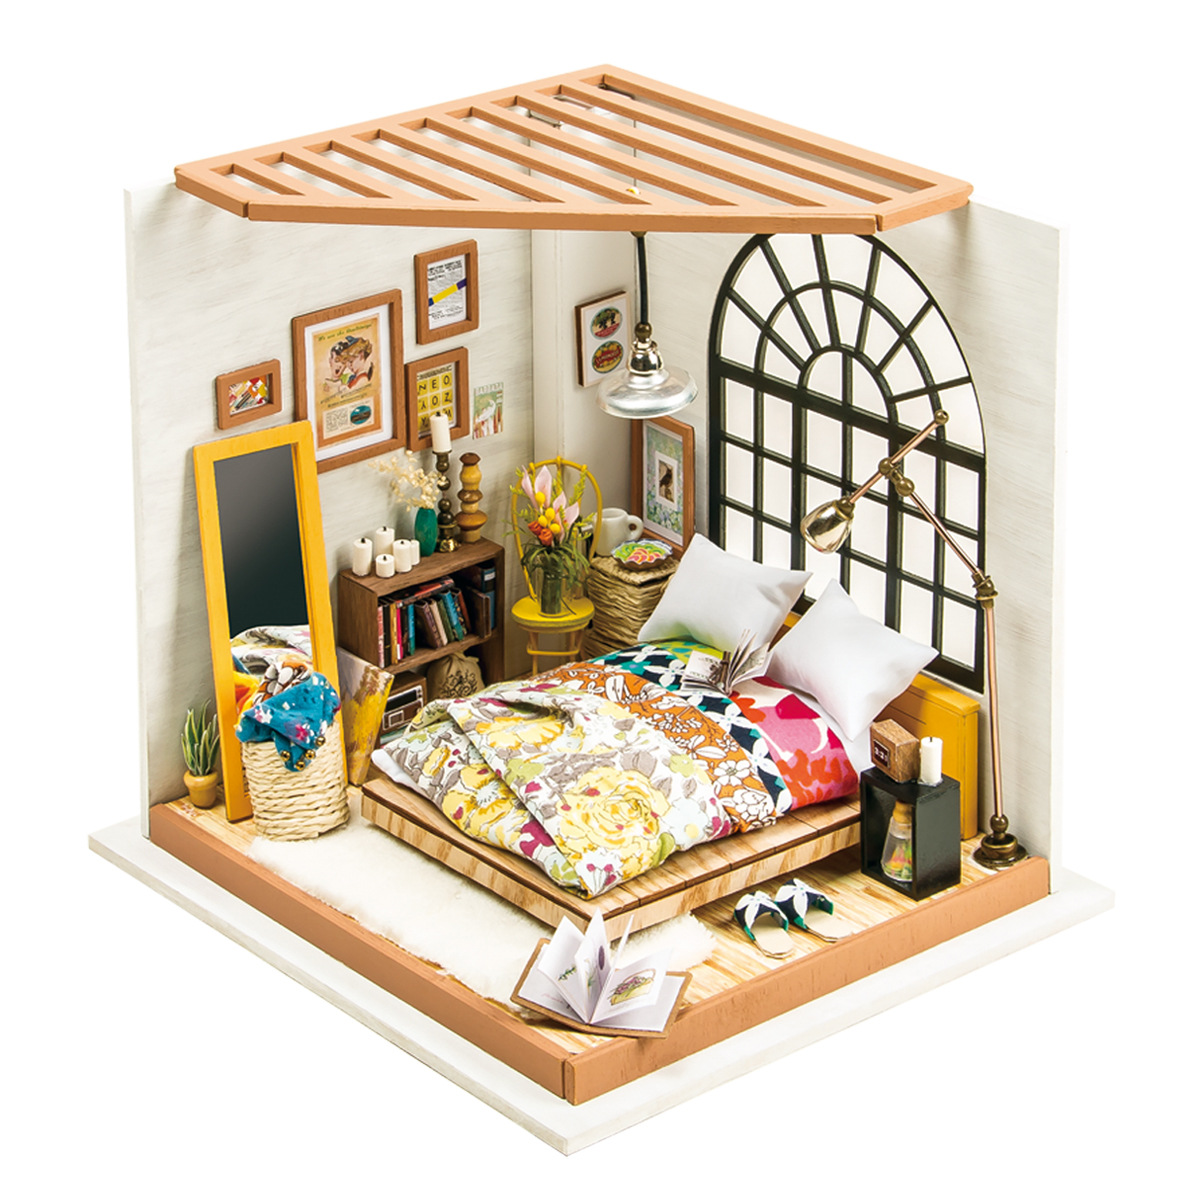 DIY Dollhouse Kit-Alices Dreamy Bedroom with Furniture Adult Children Model Building Miniature Doll House Kits Toys R8DIY Dollhouse Kit-Alices Dreamy Bedroom with Furniture Adult Children Model Building Miniature Doll House Kits Toys R8